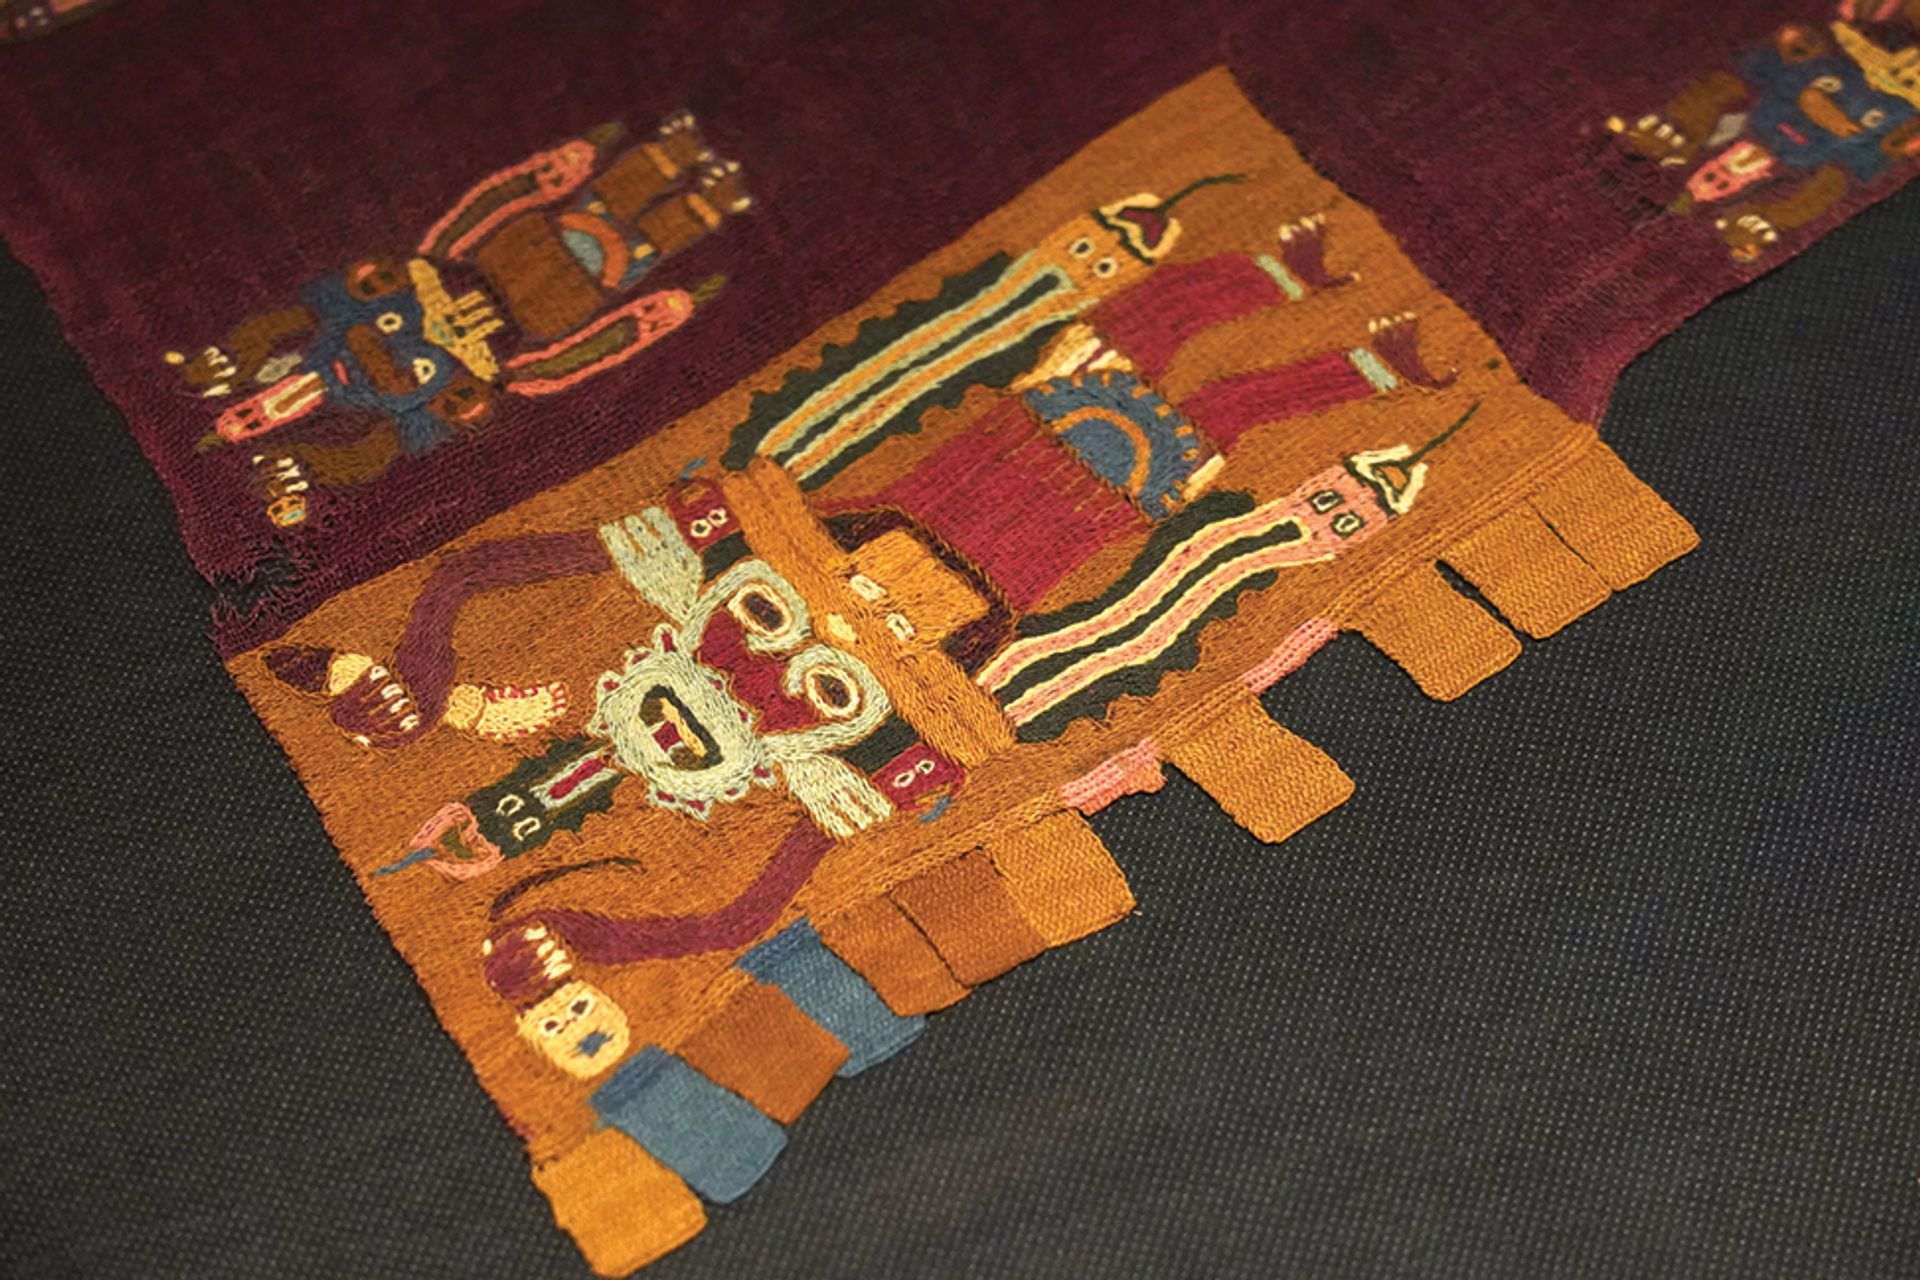 The new museum south of Lima contains textiles and other recently repatriated artefacts Courtesy of the Museo Nacional del Perú